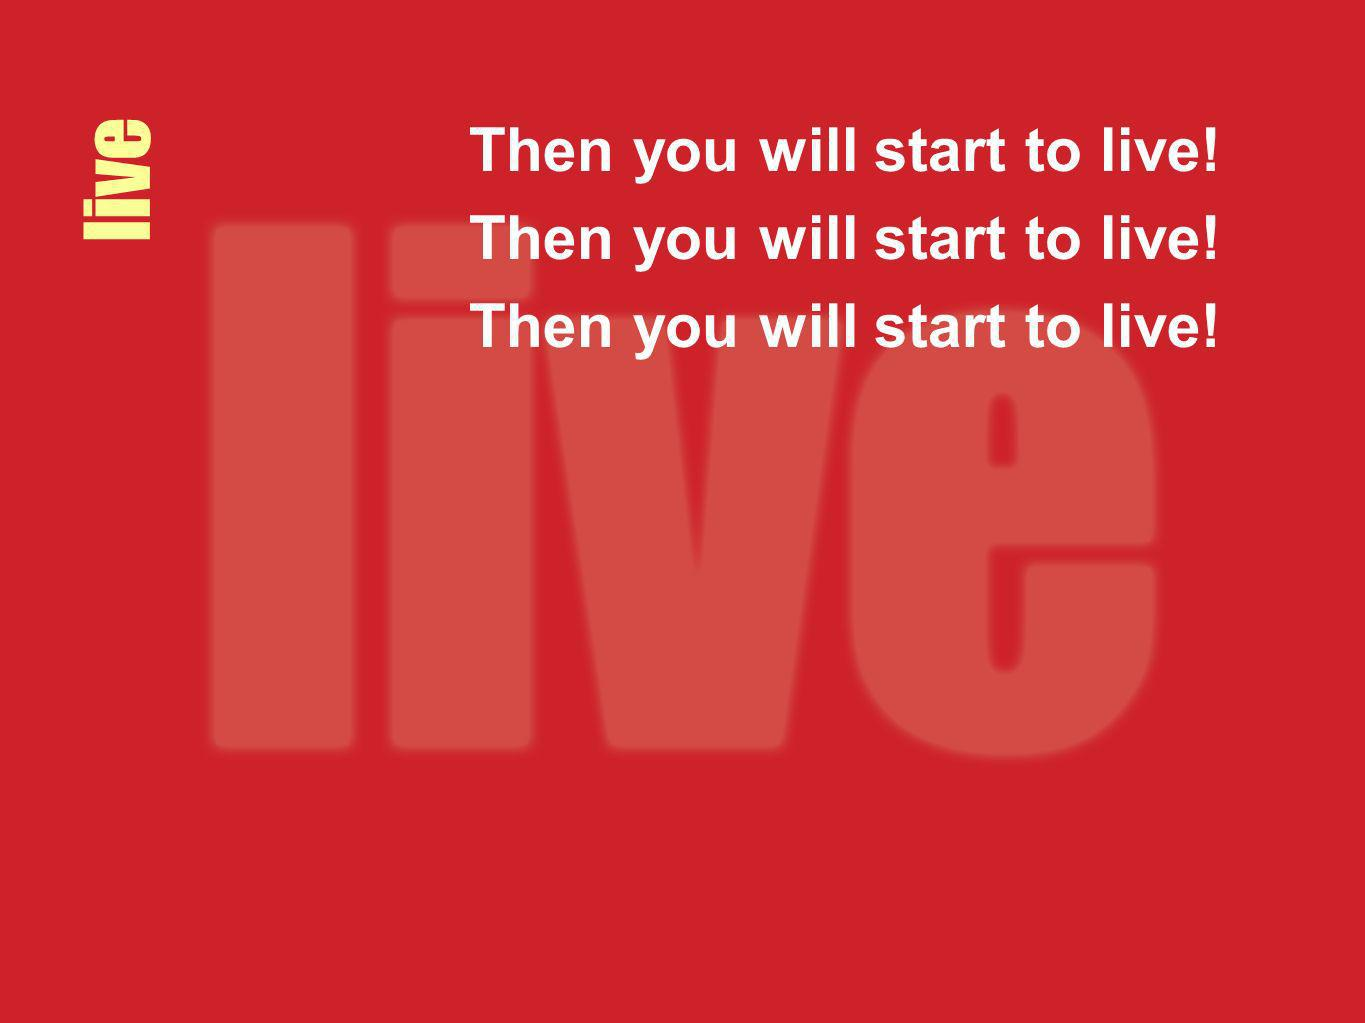 Then you will start to live!